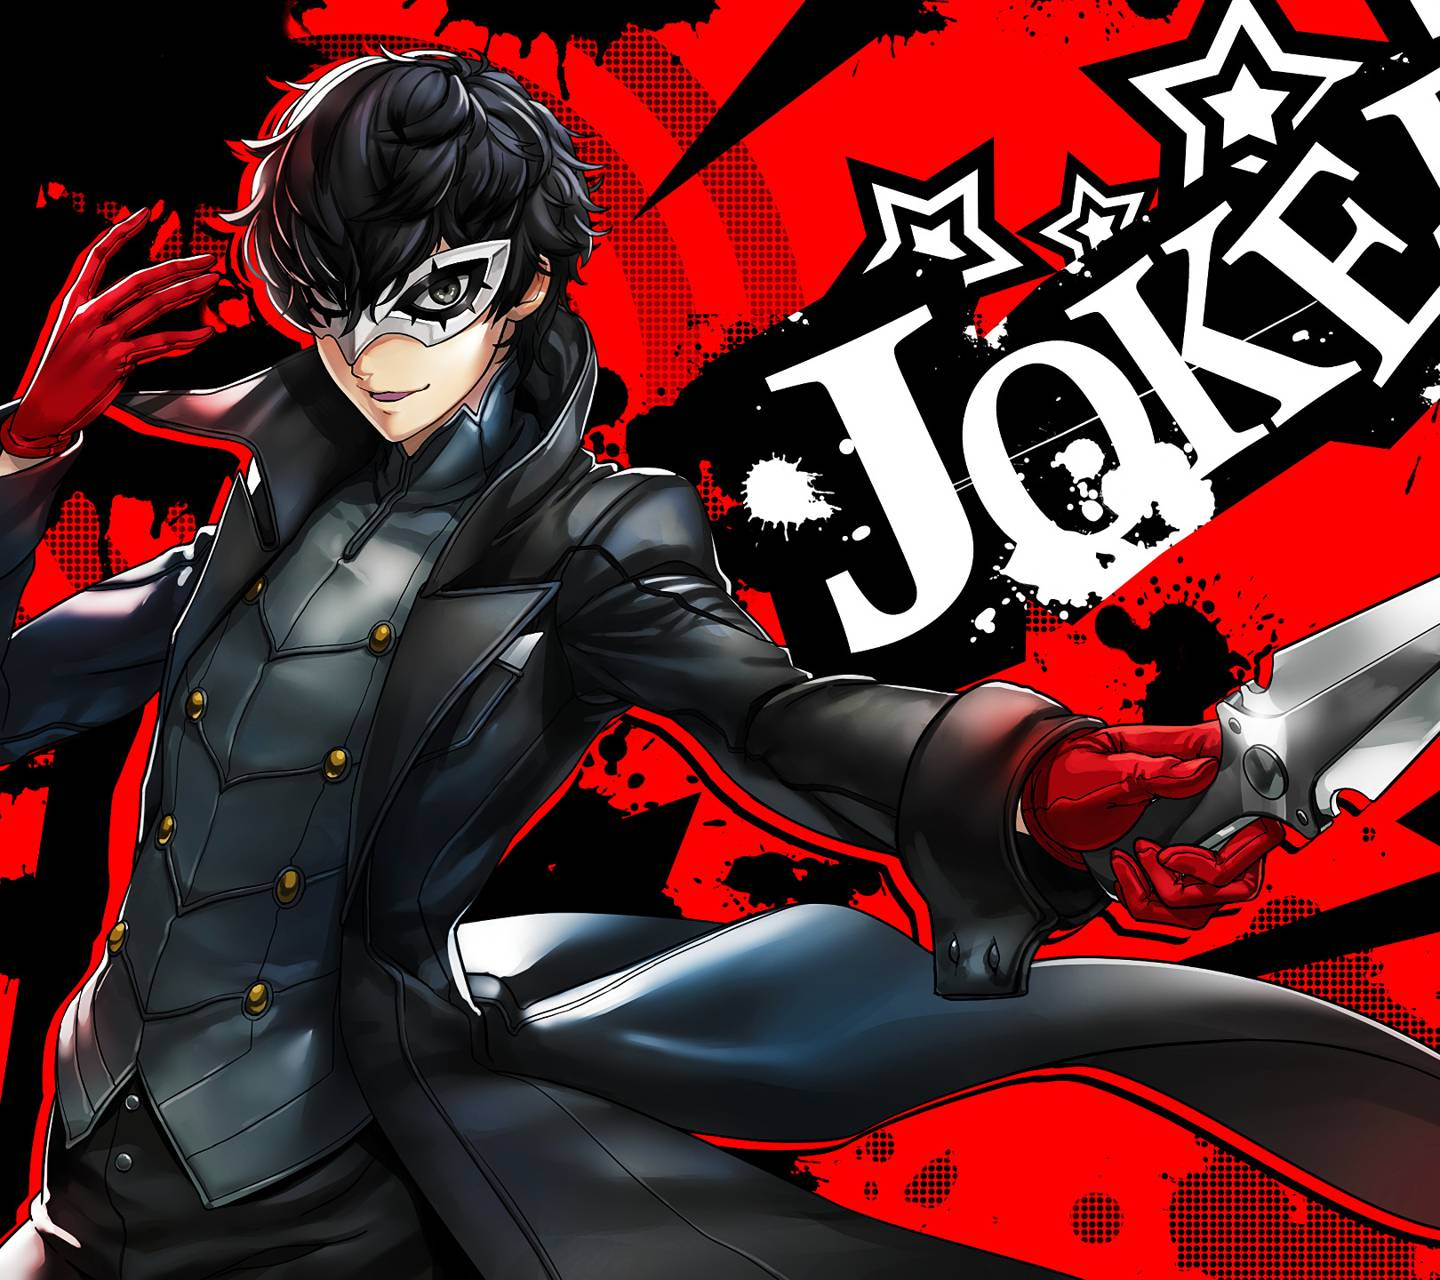 Persona Joker Wallpapers - Wallpaper Cave